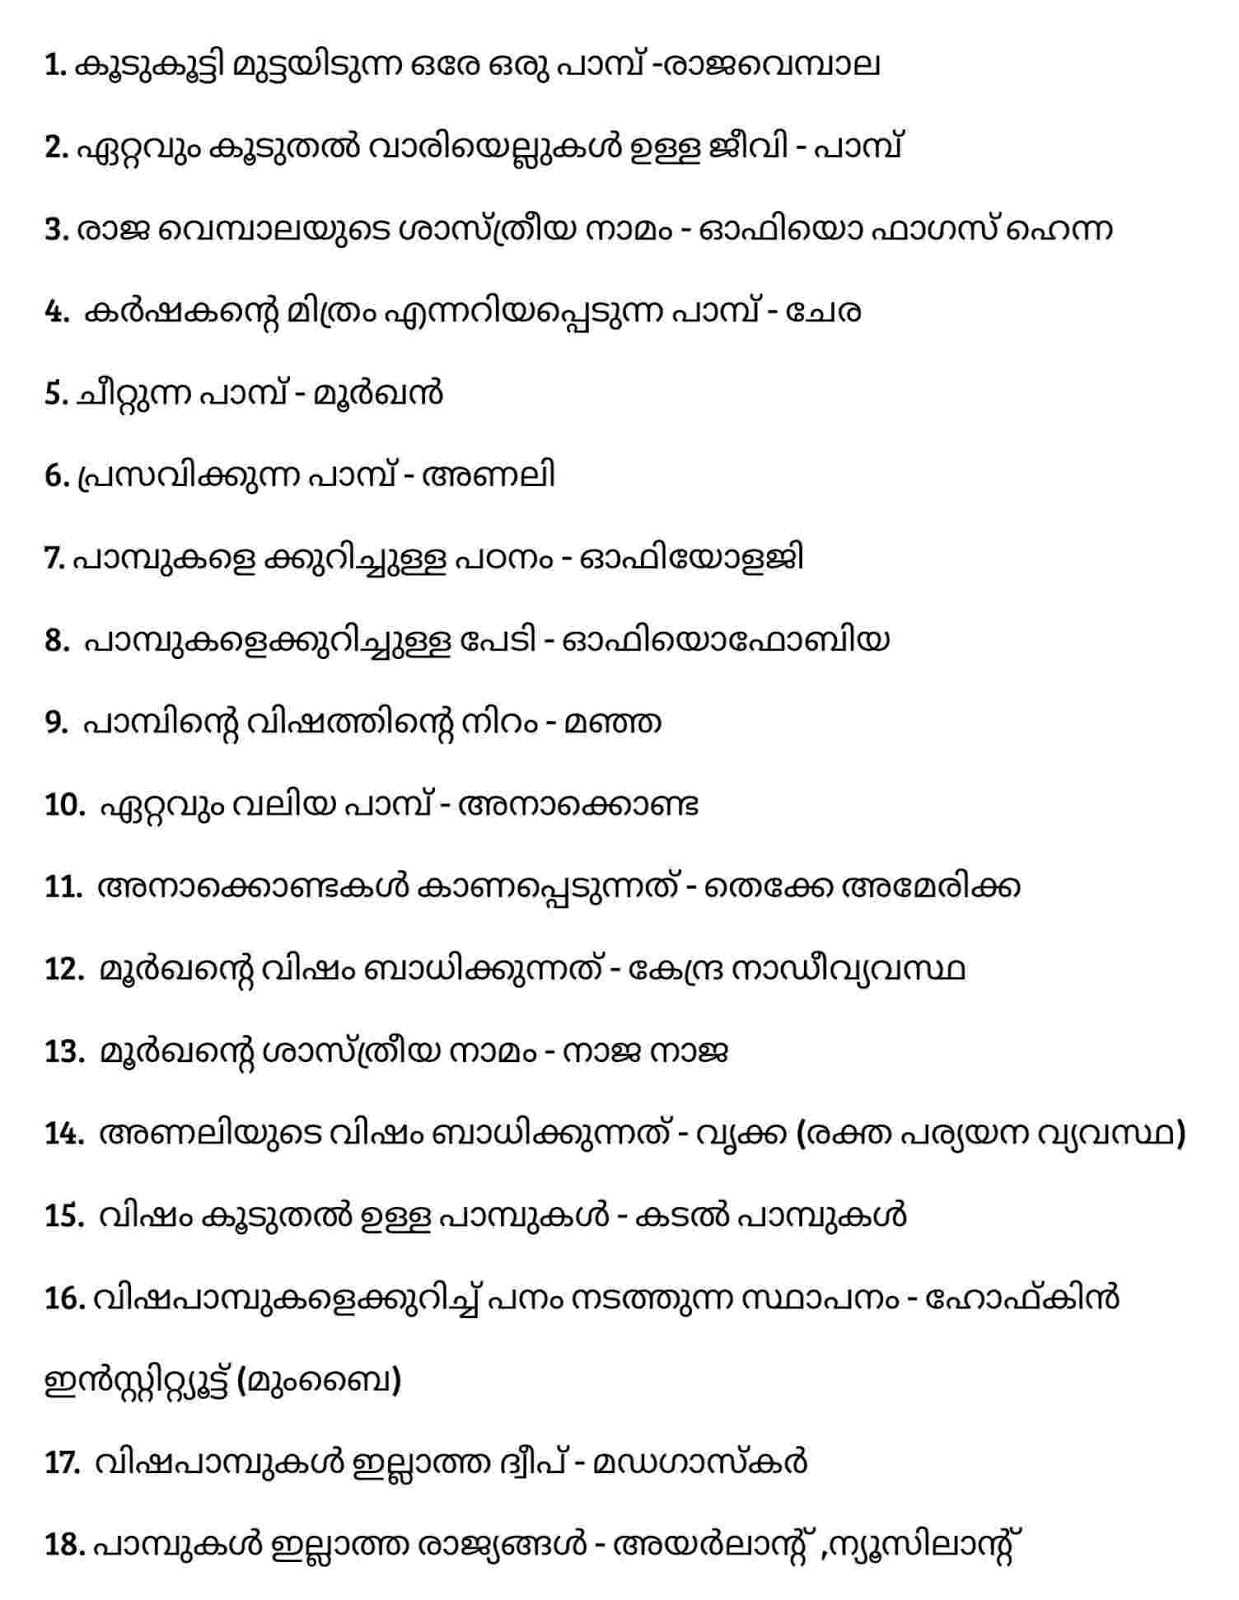 Kerala Psc Questions And Answers In Malayalam Pdf